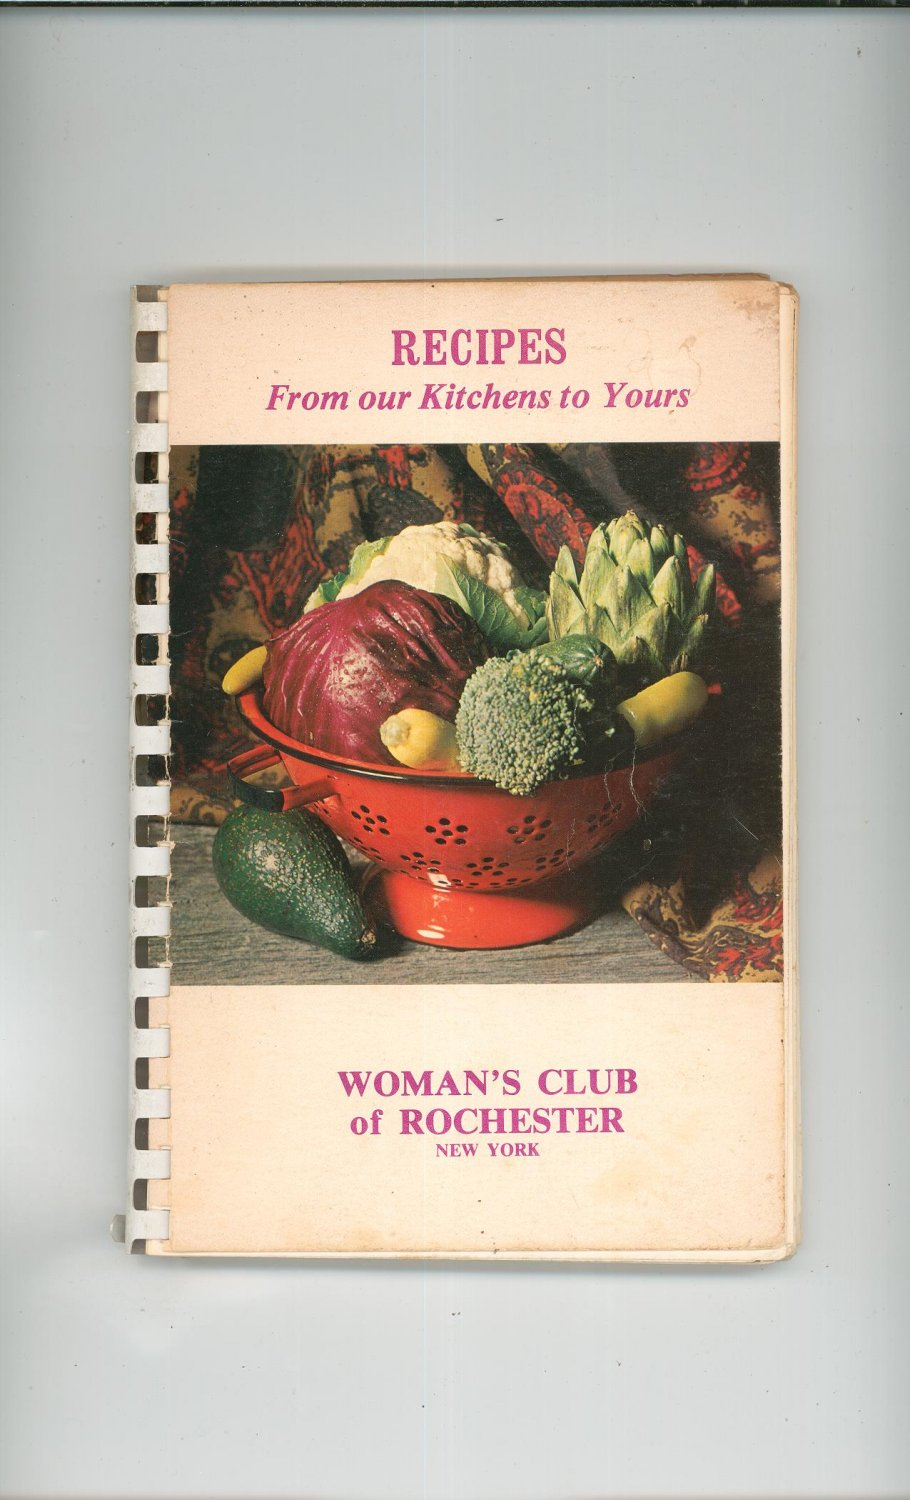 Recipes From Our Kitchens To Yours Cookbook Regional New York Woman's Club Rochester